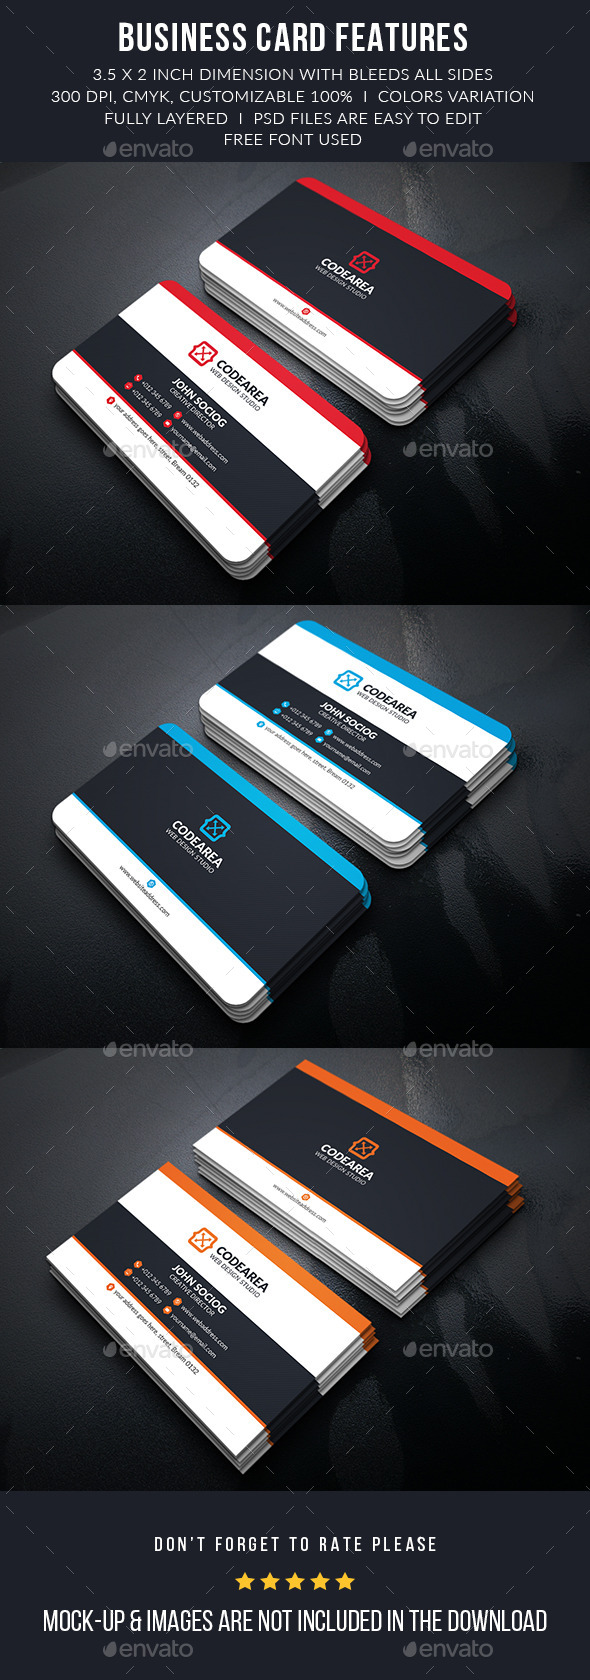 Creativeart Corporate Business Cards - Corporate Business Cards